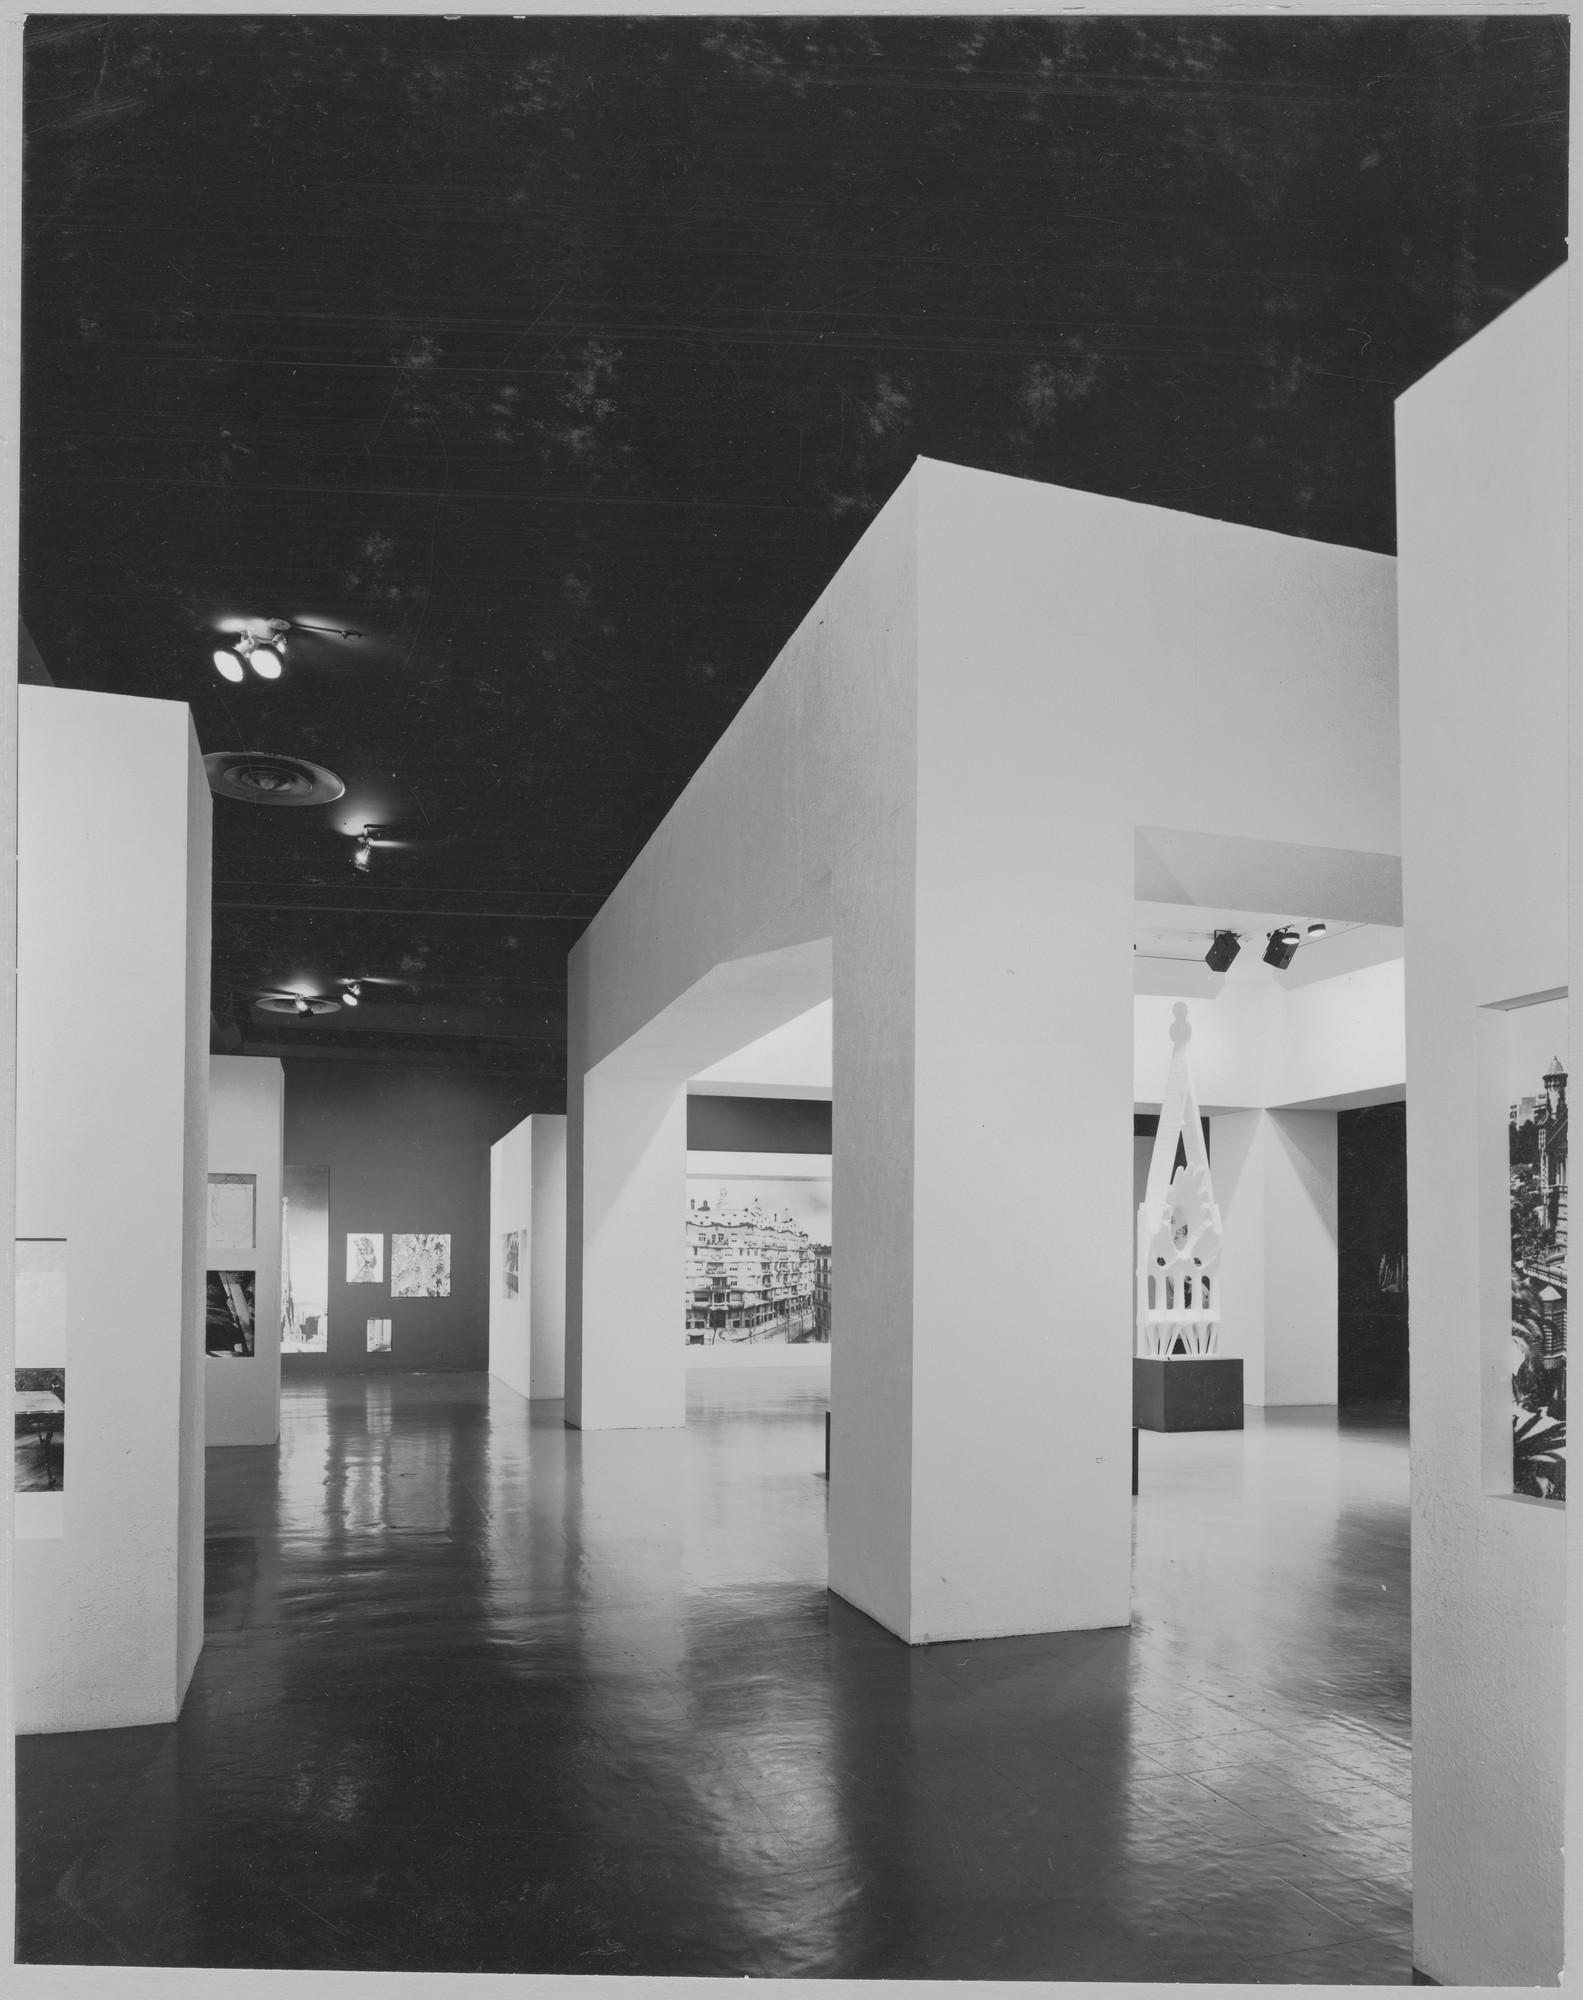 "Installation view of the exhibition, ""Gaudí"" December 18, 1957–February 23, 1958. Photographic Archive. The Museum of Modern Art Archives, New York. IN627.1. Photograph by Alexandre Georges."